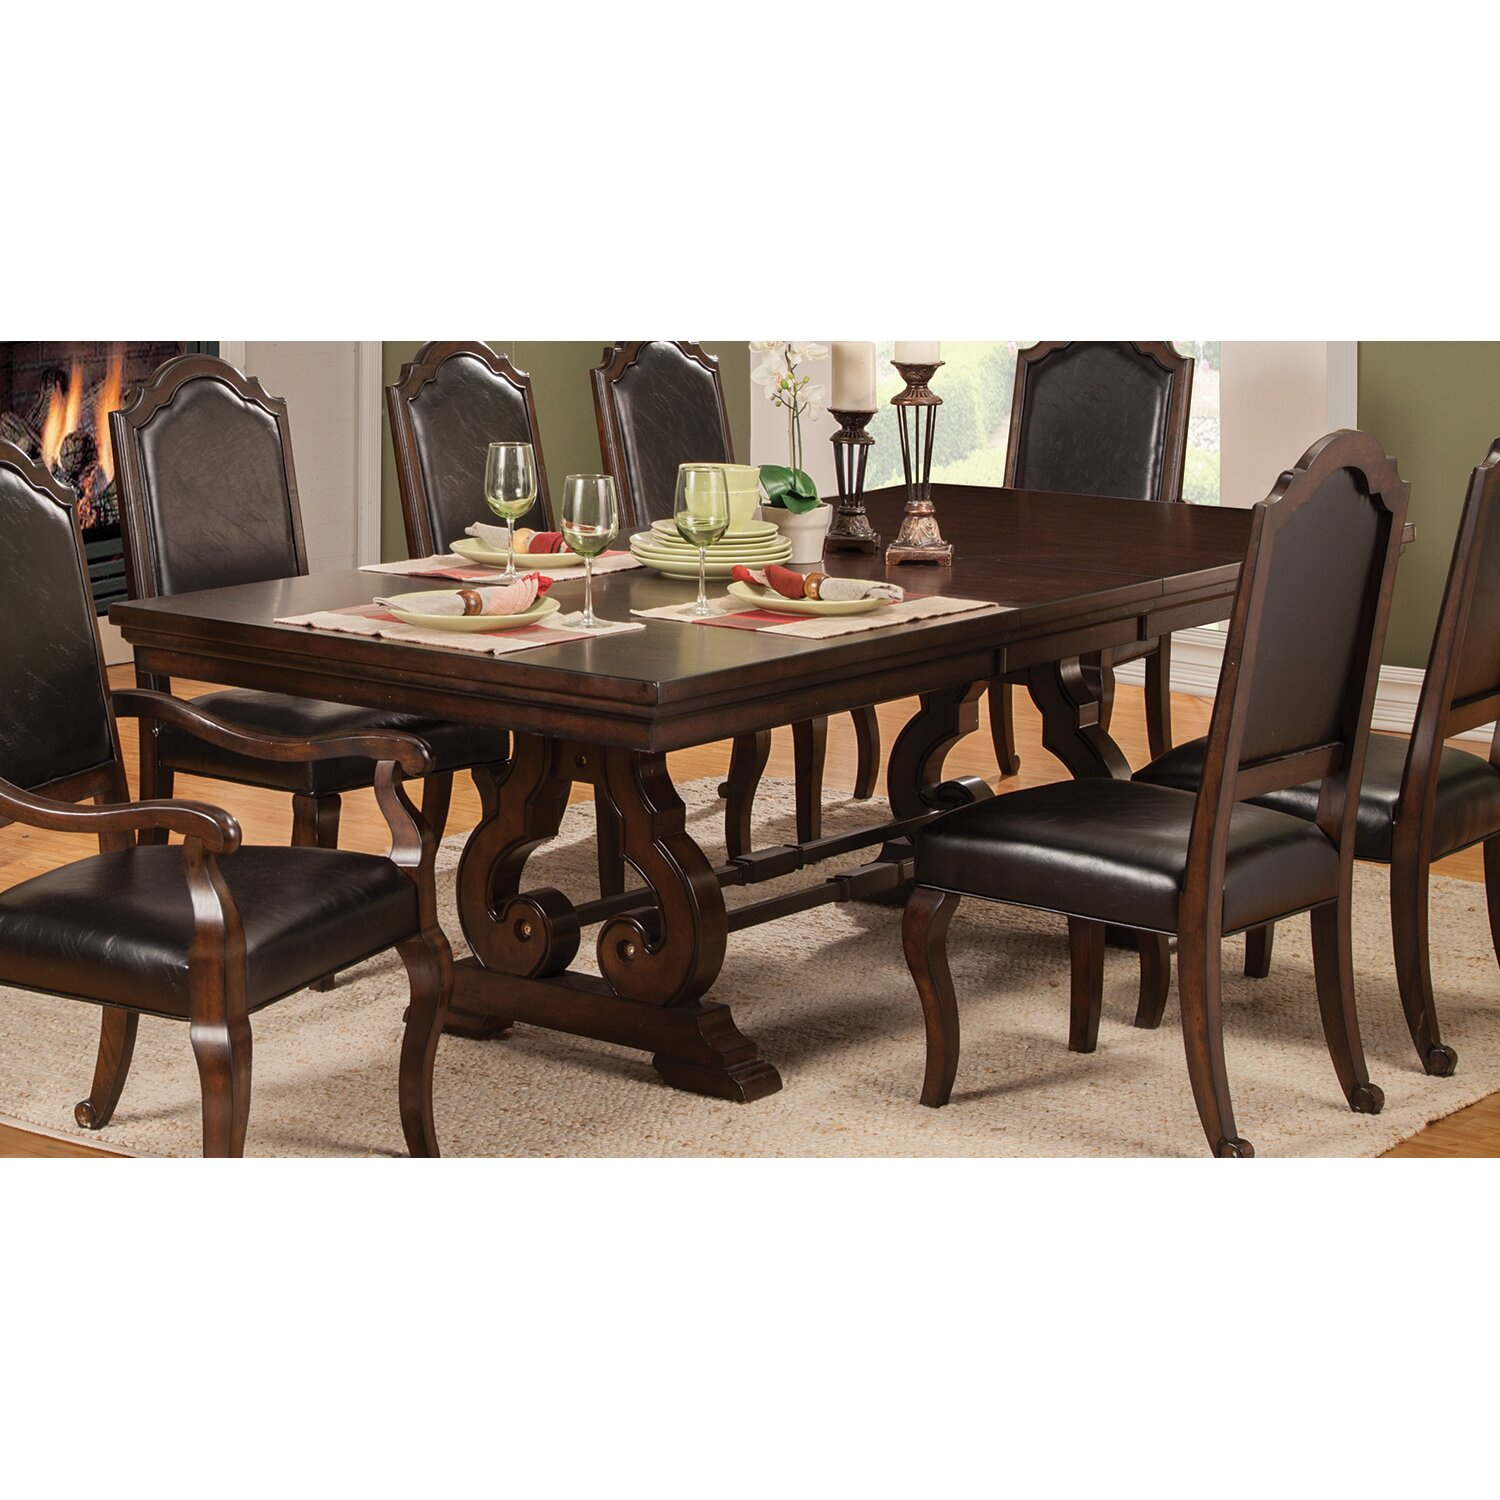 Wildon home bedford dining table wayfair for Wildon home dining